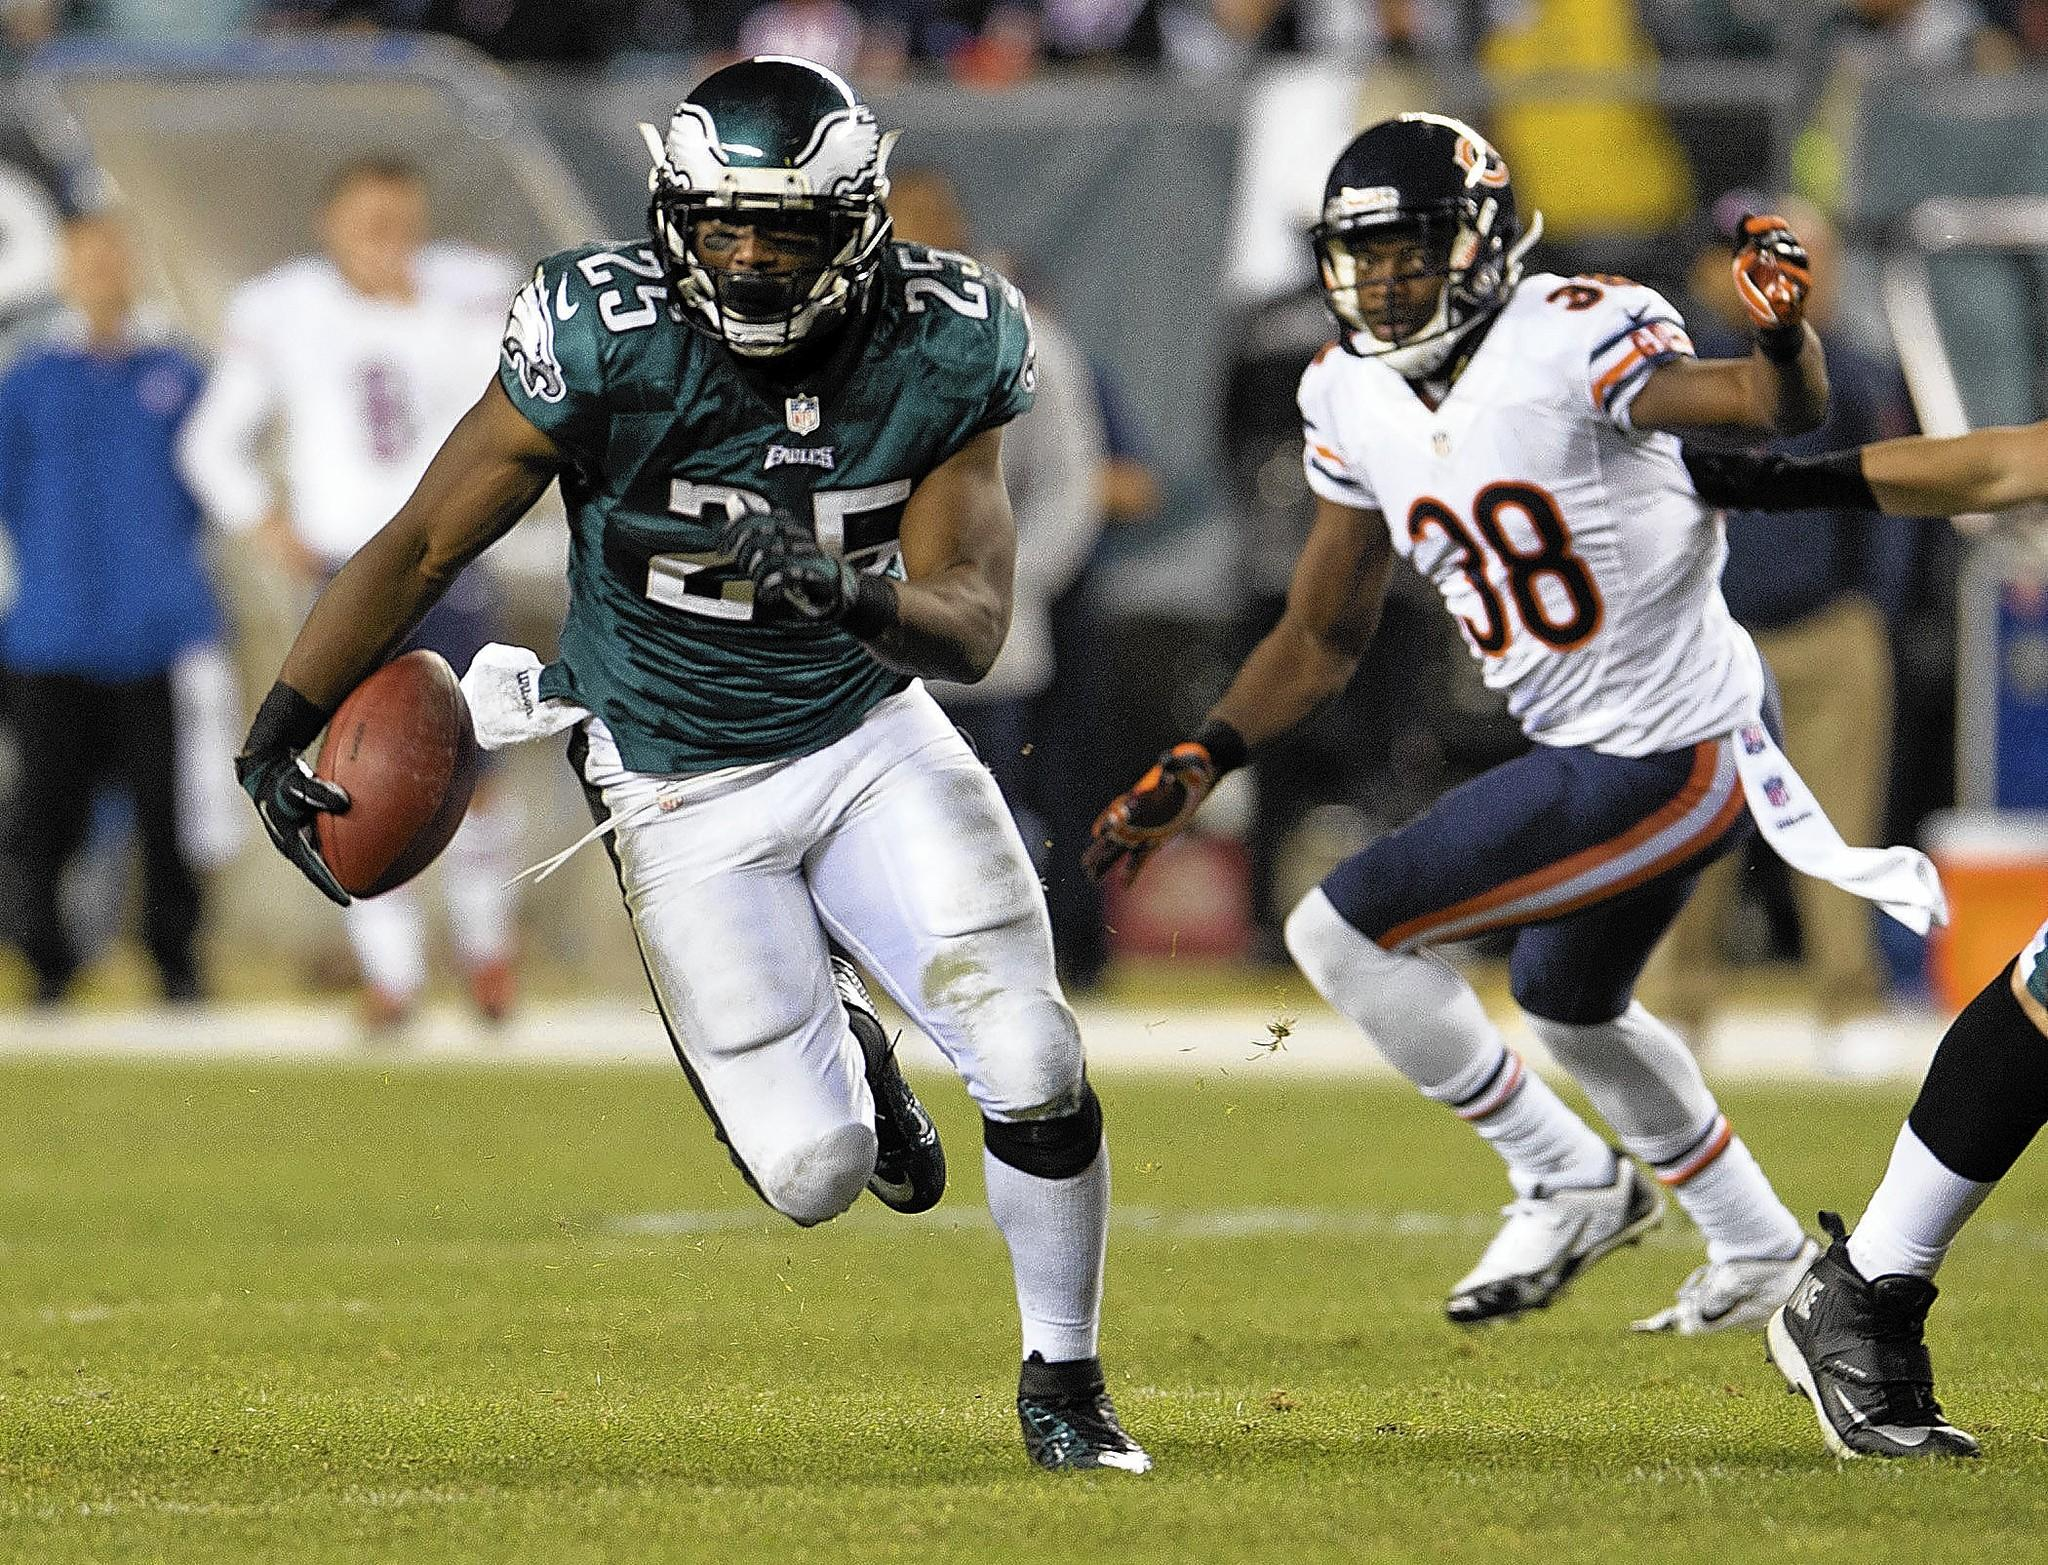 Eagles running back LeSean McCoy leads the NFL in rushing this season with 1,476 yards. He had a big game Sunday night against the Bears.